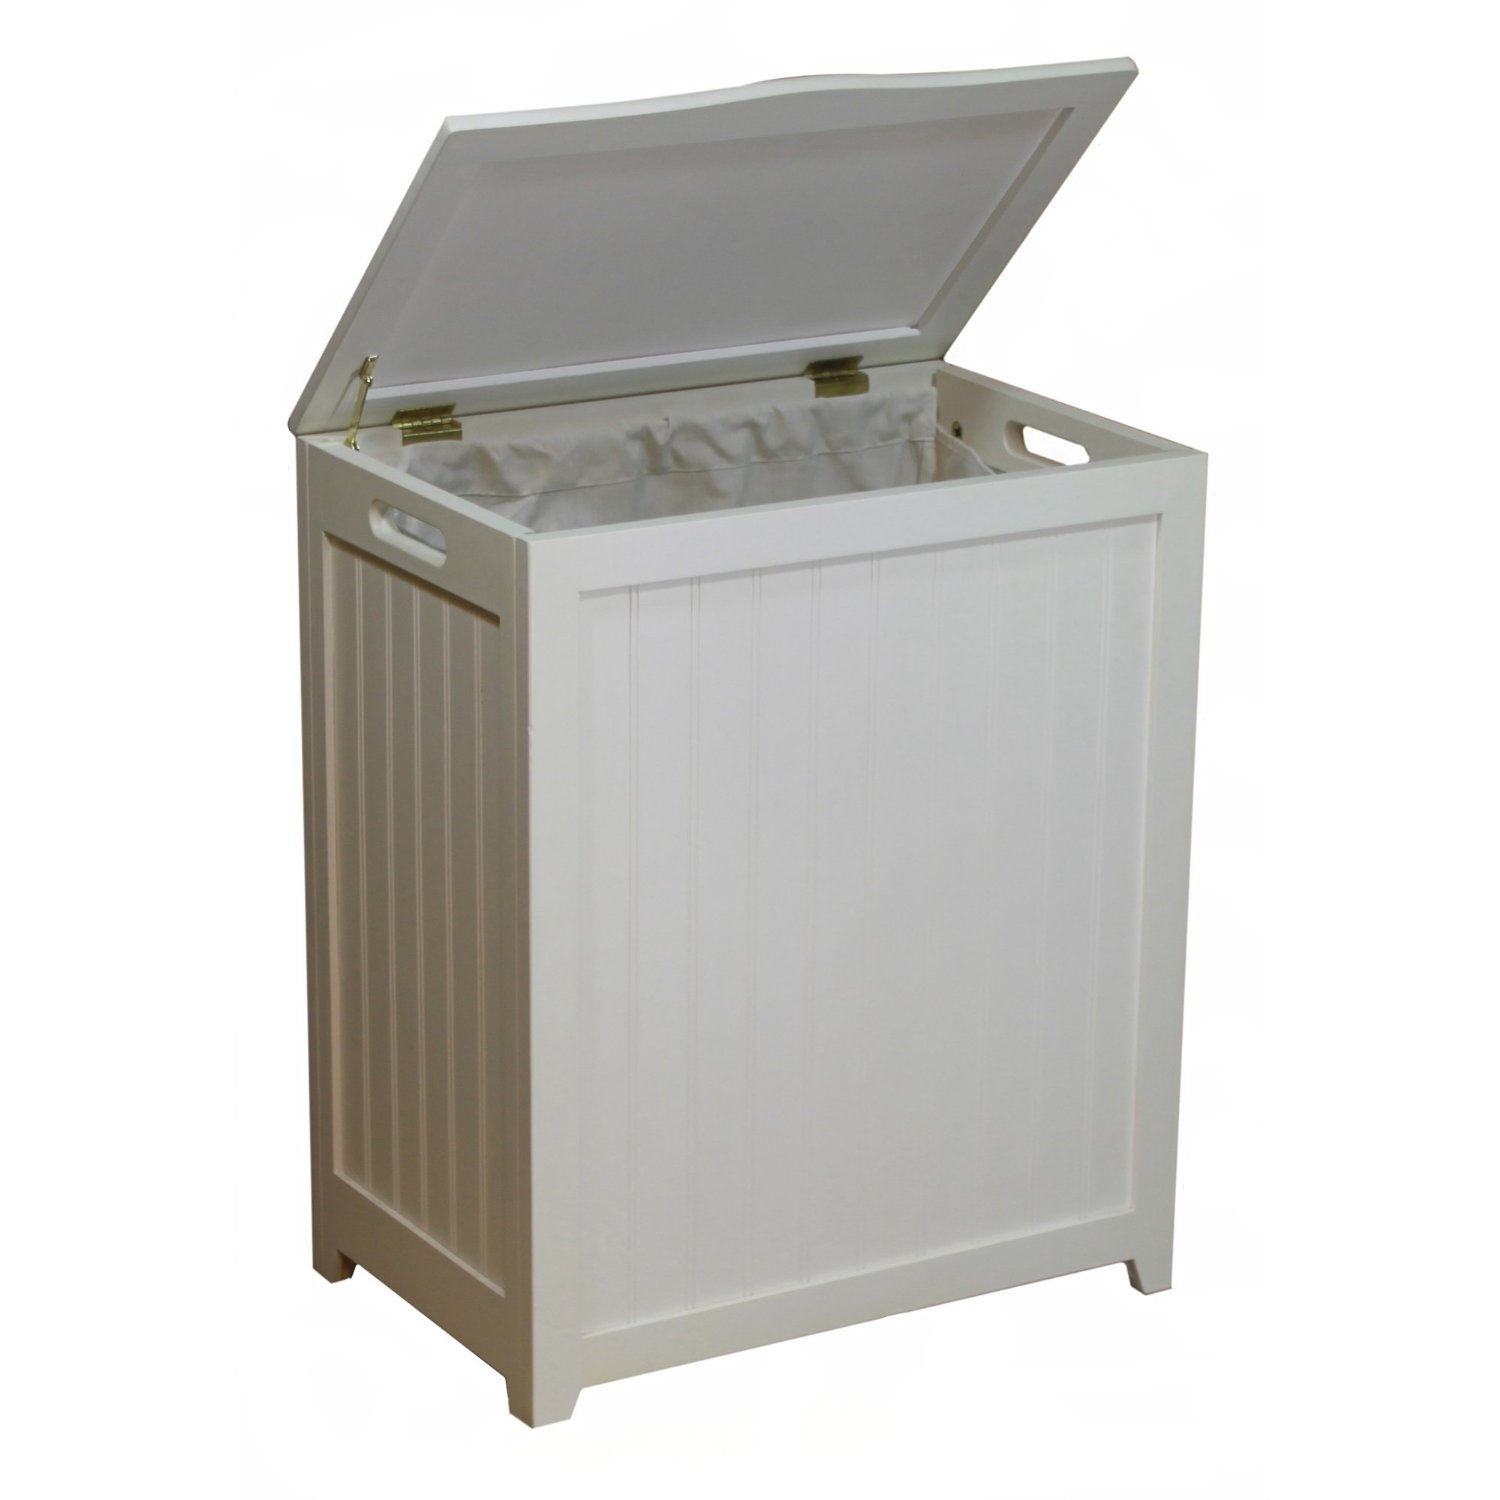 White Laundry Hamper With Lid Creativeworks Home Decor Laundry Hampers